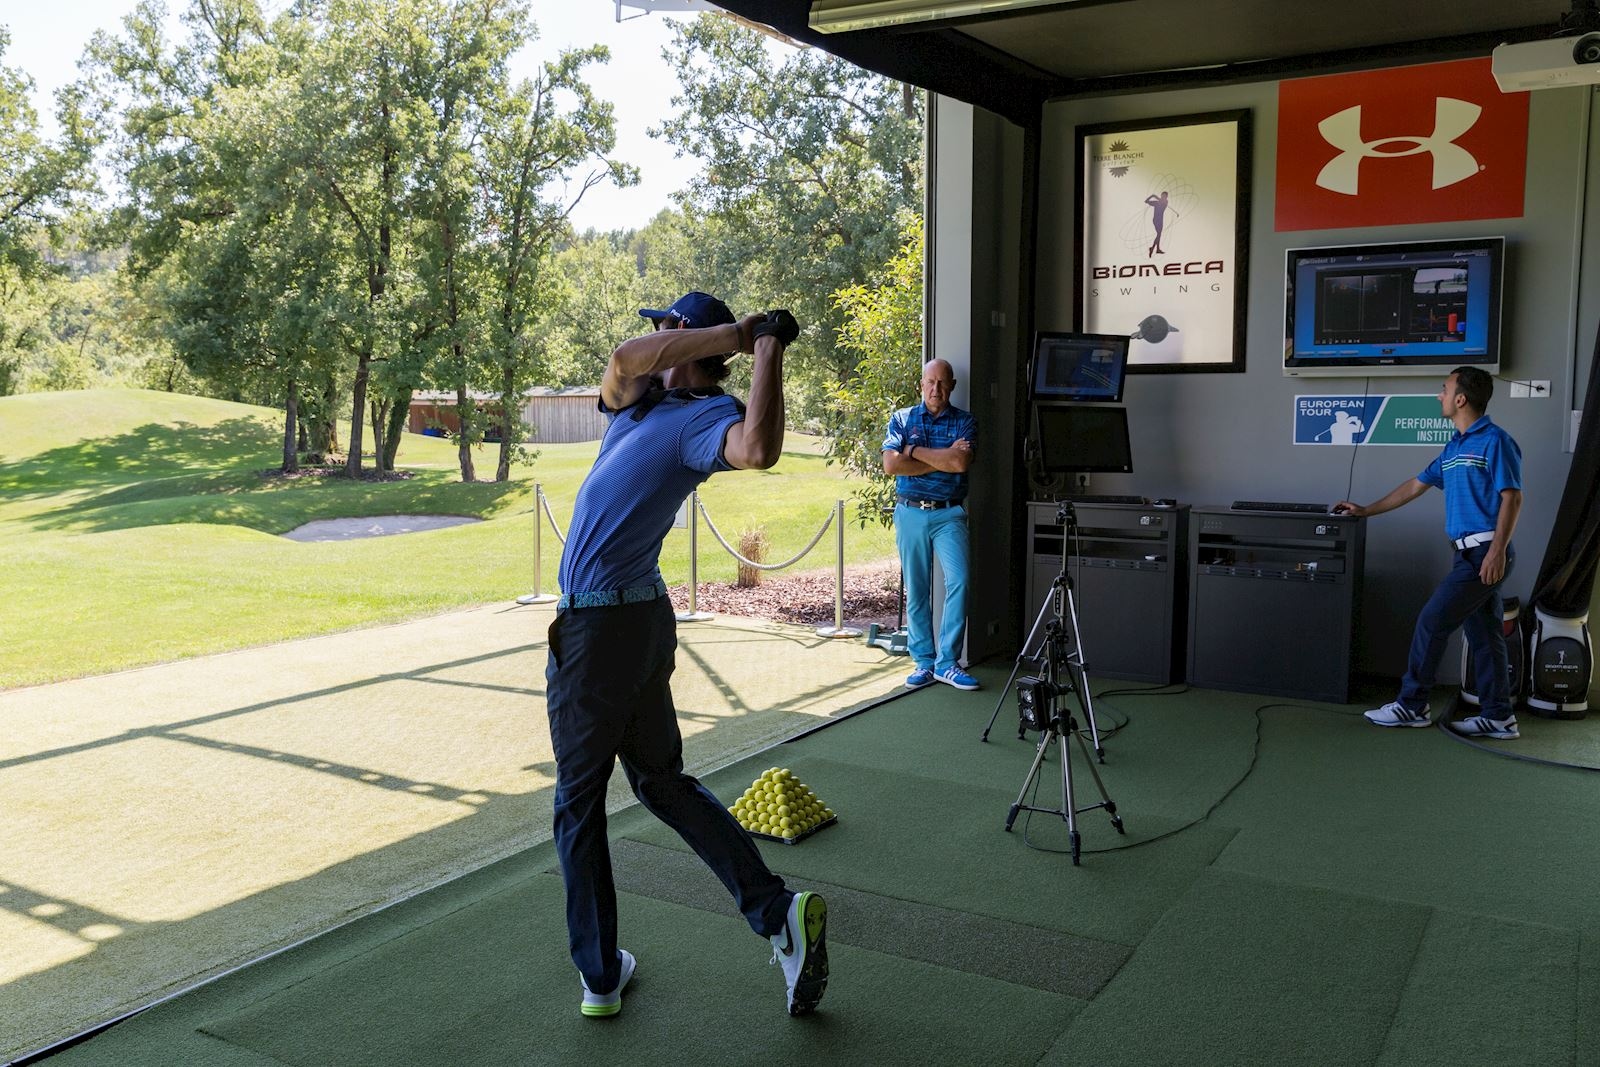 Biomecaswing - Coaching du swing